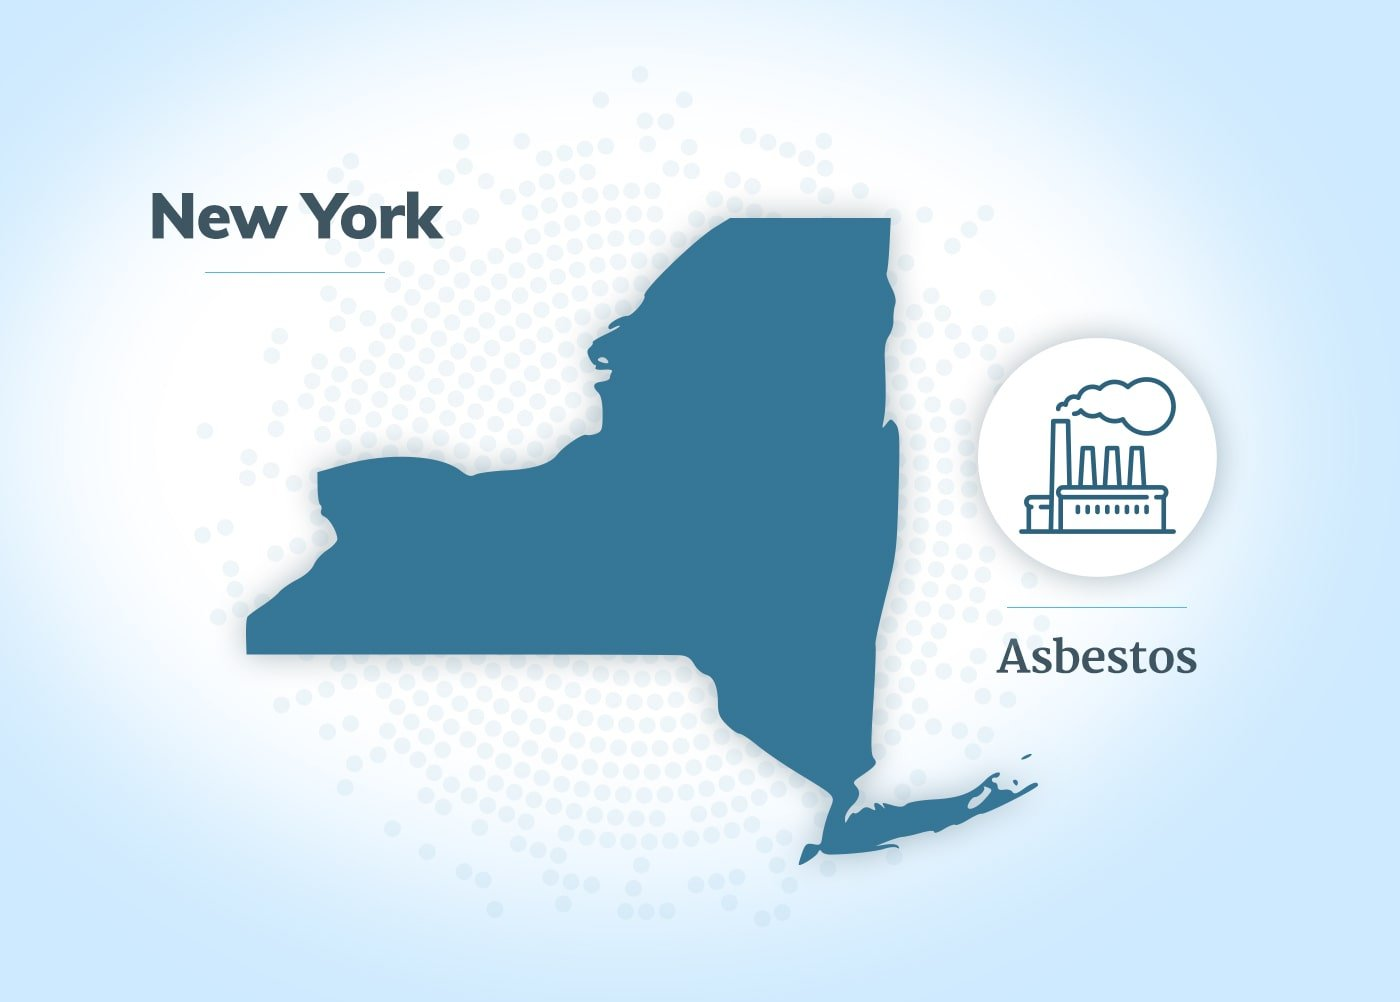 Asbestos exposure in New York